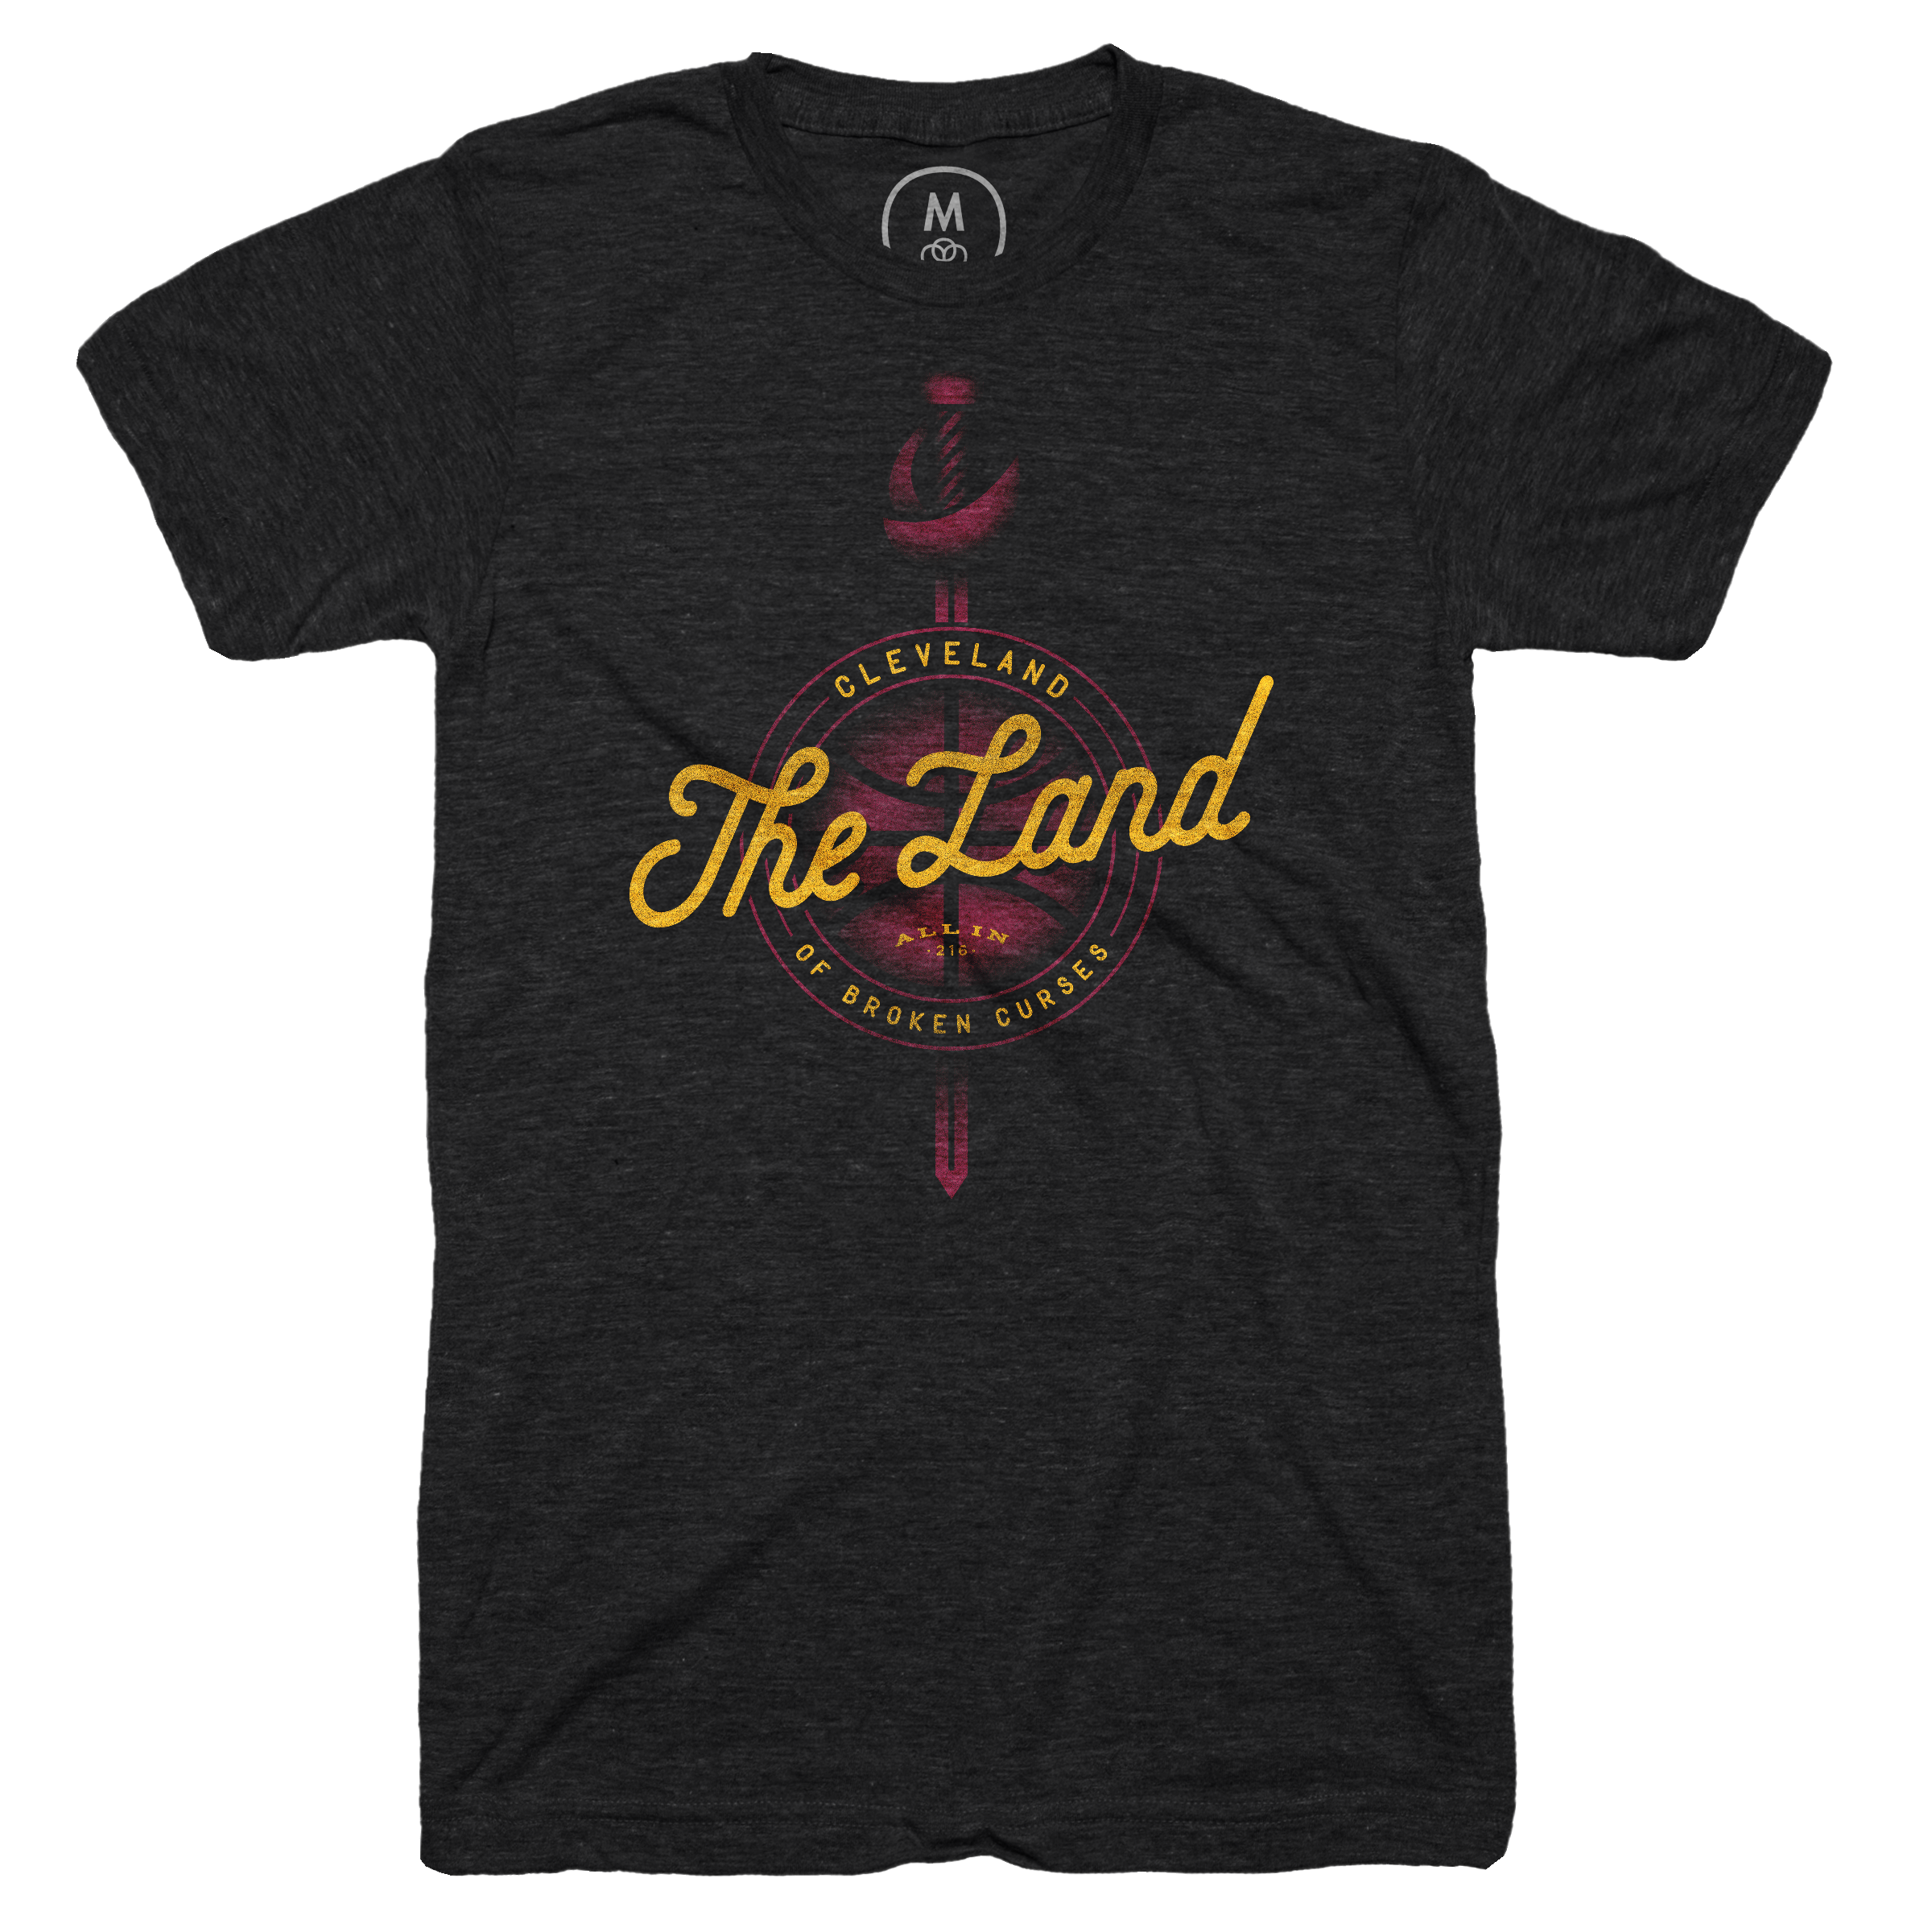 Cleveland: The Land of Broken Curses